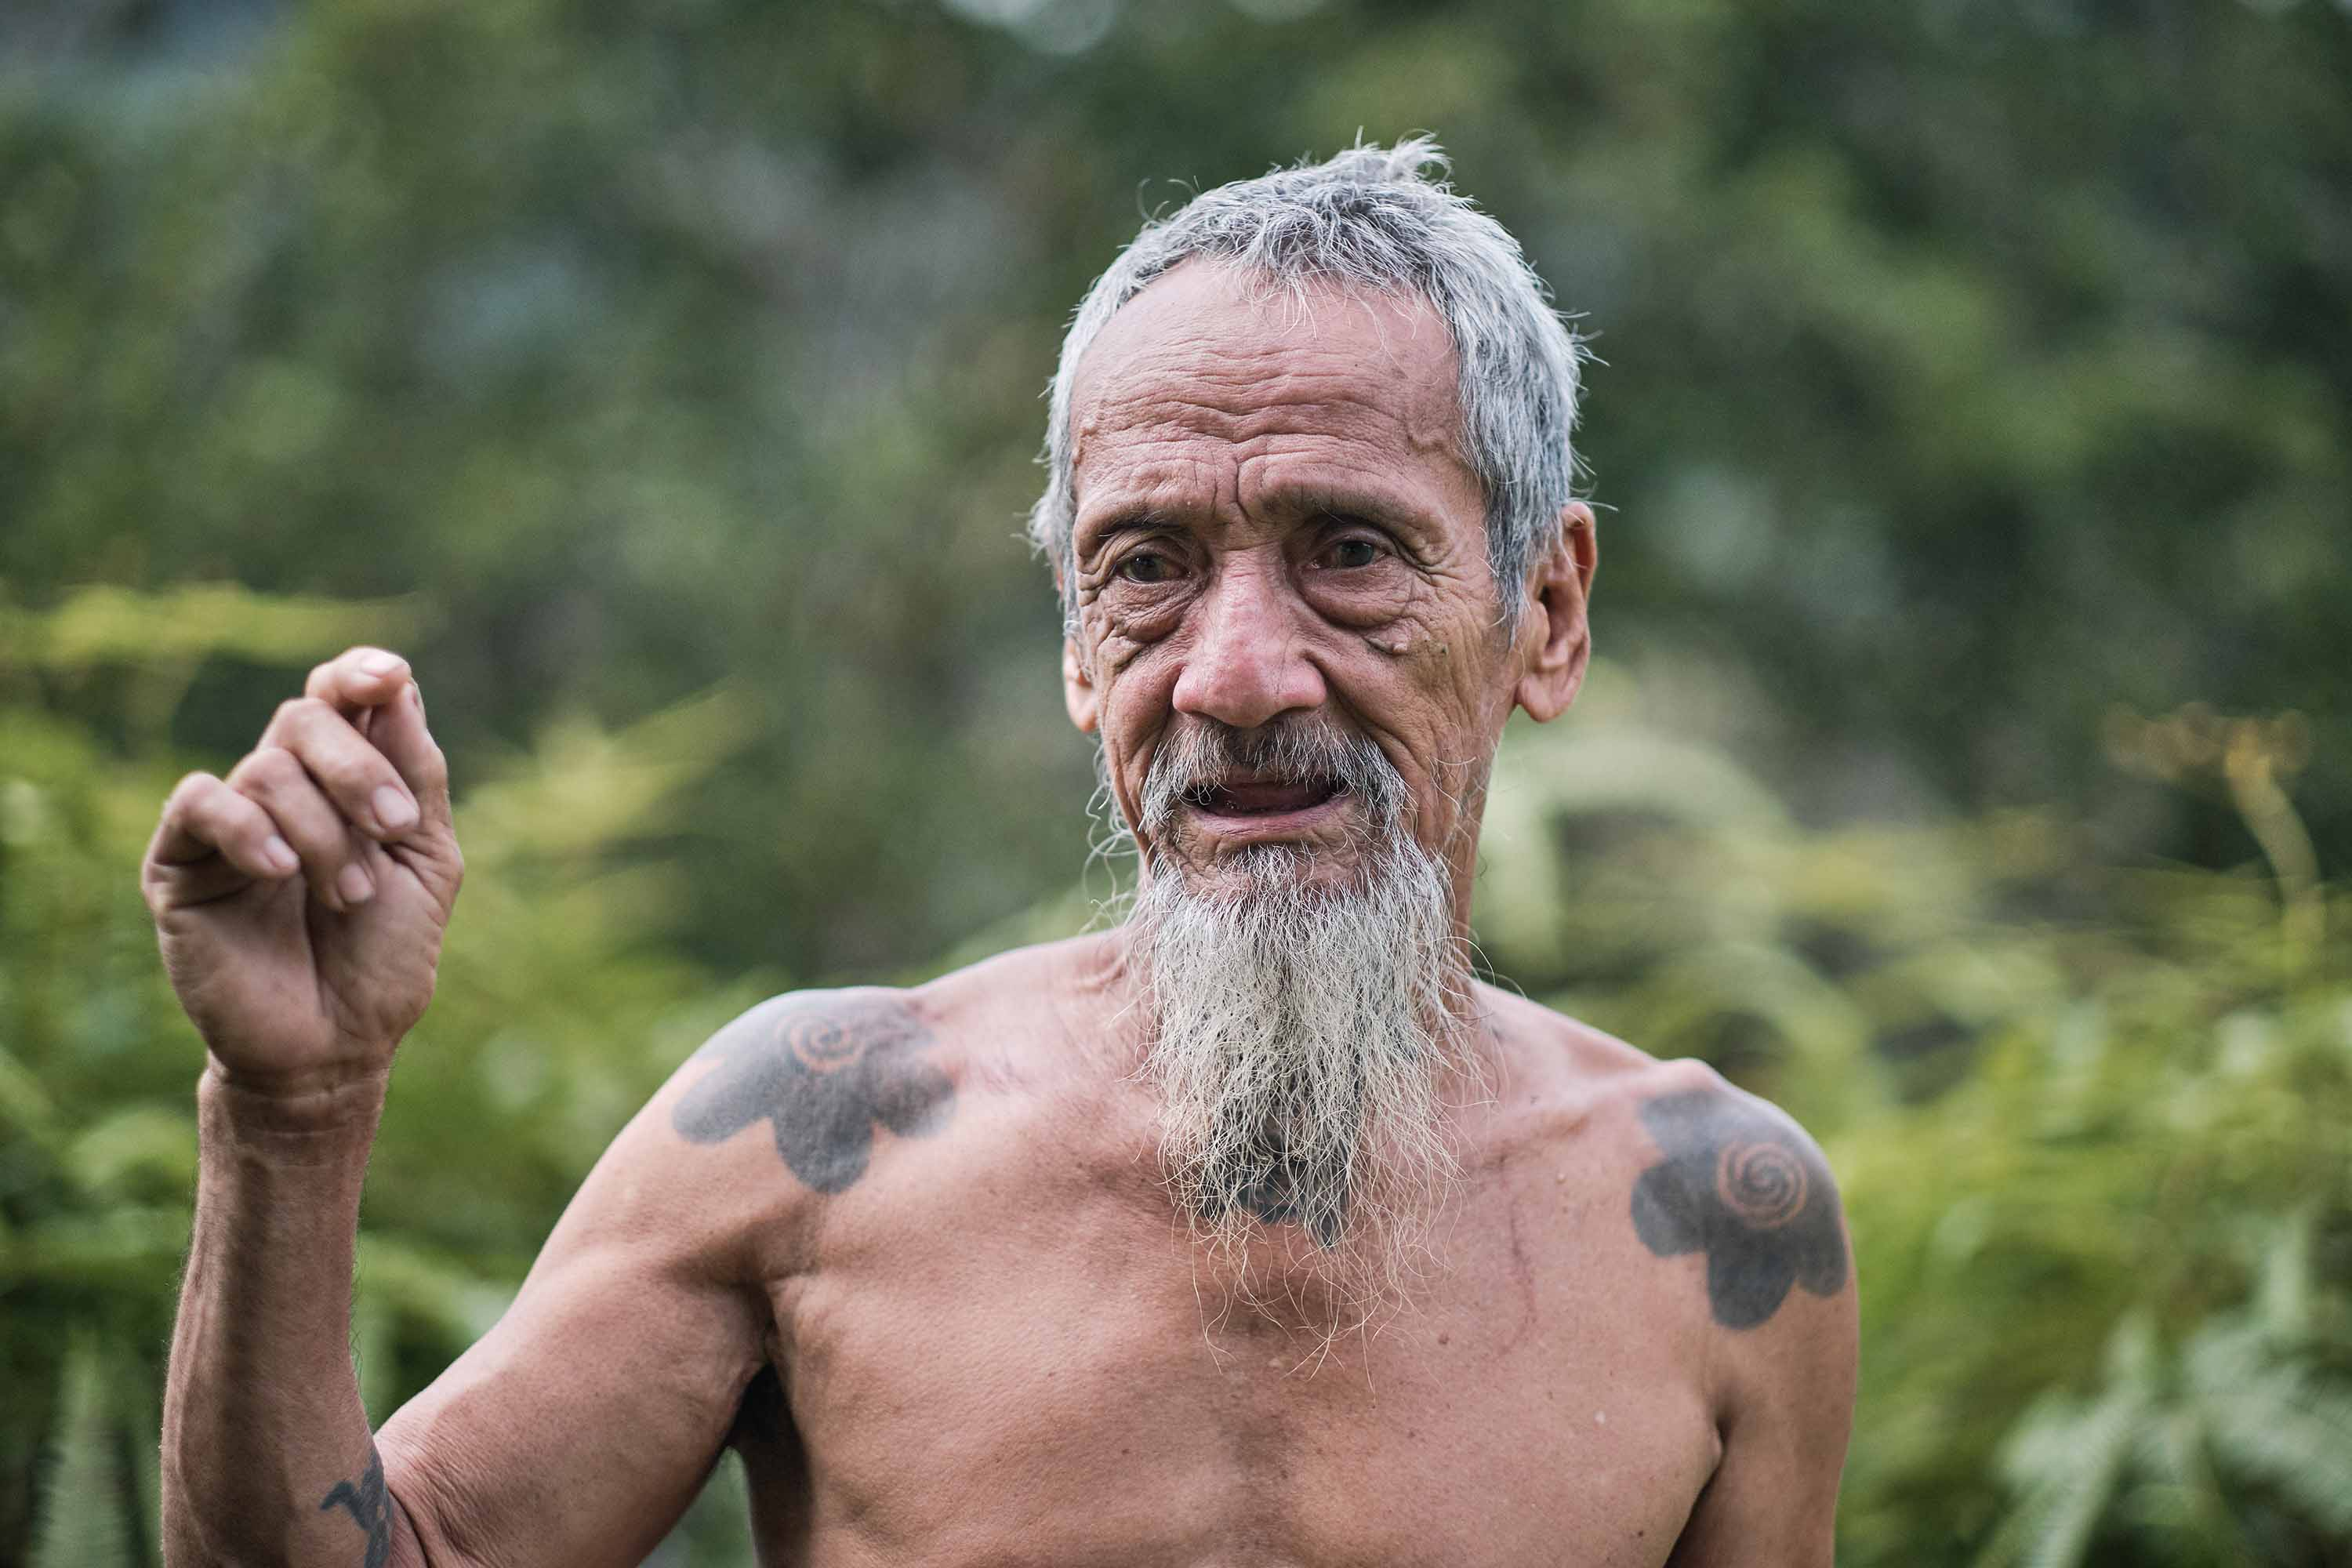 A shirtless Apai Janggut in the forest with short gray hair, a long gray beard, and indigenous tattoos of flowers visible on both his shoulders.